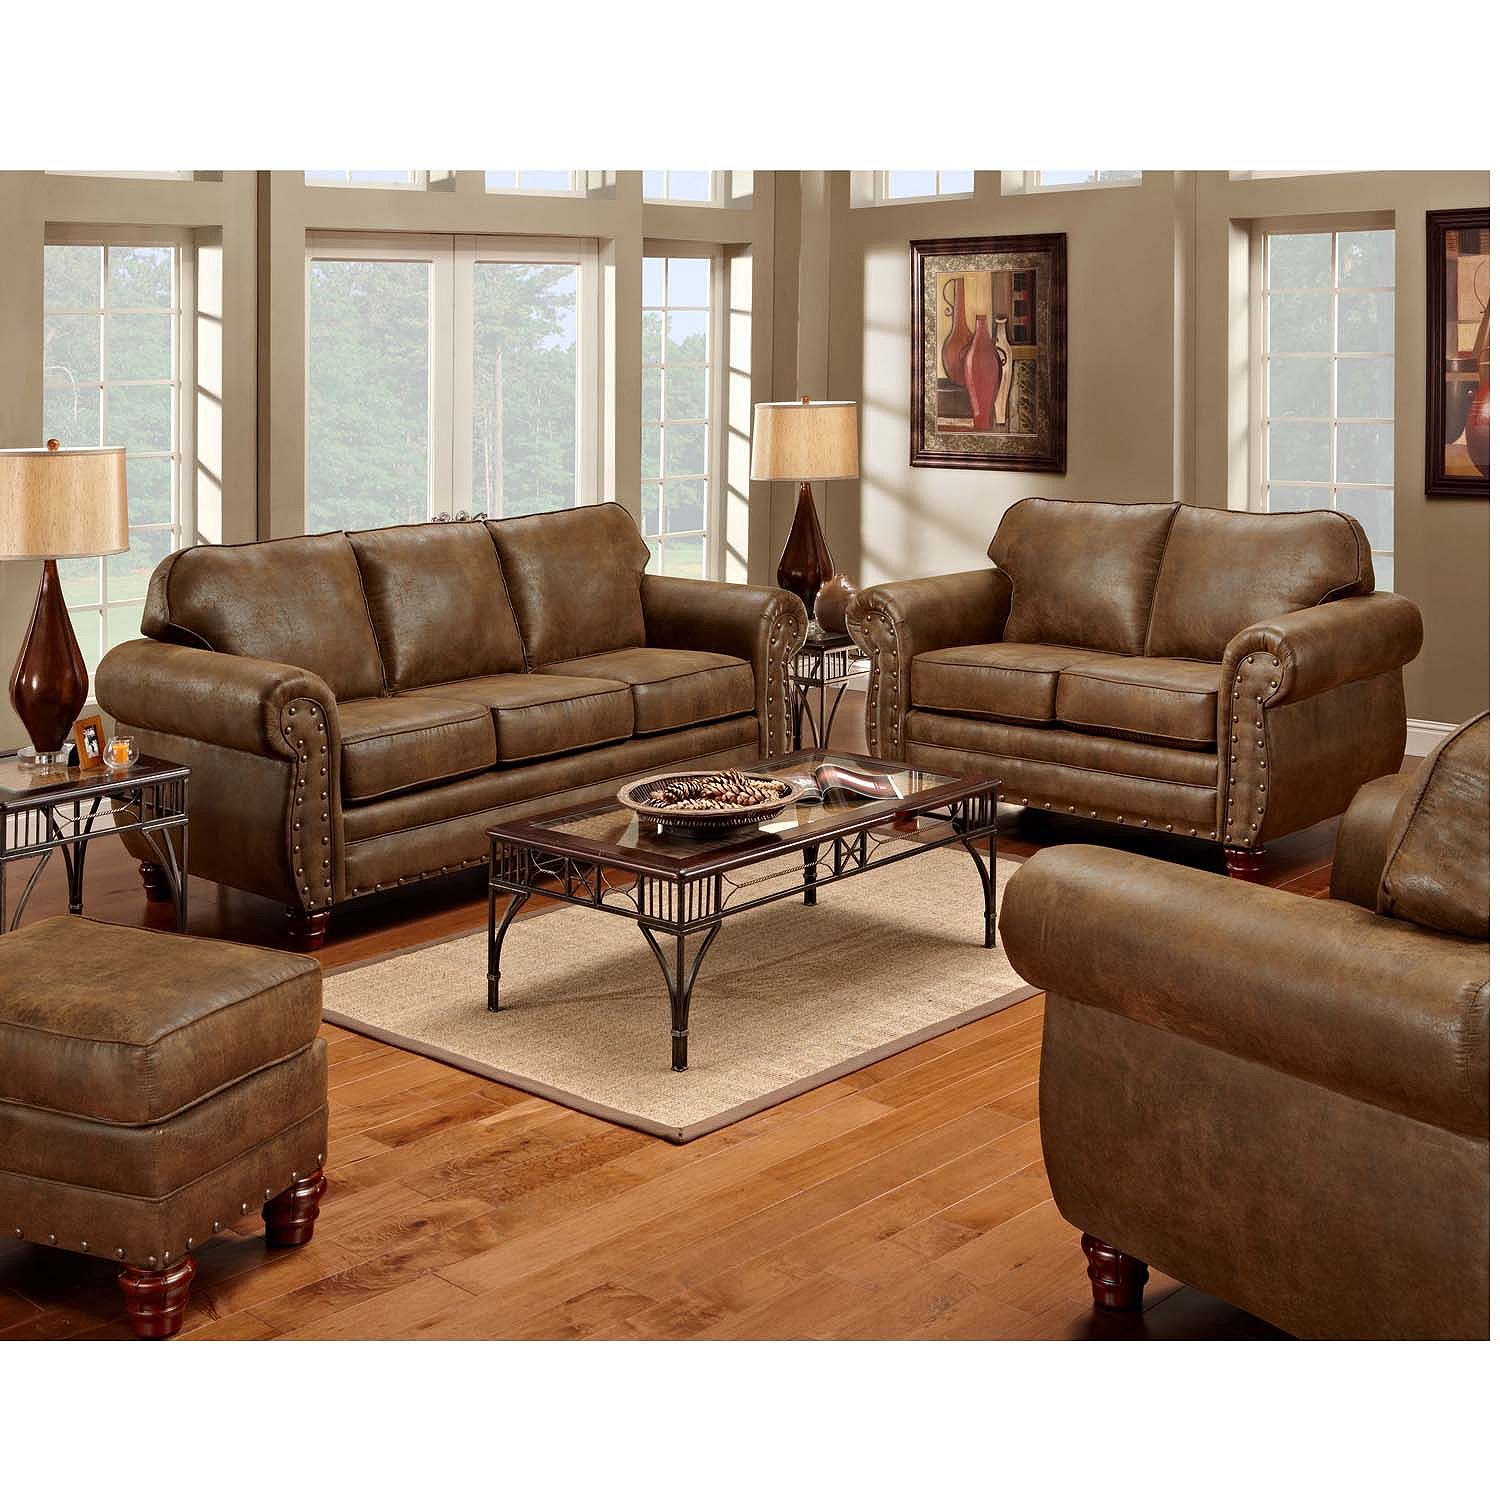 living room furnture top 4 comfortable chairs for living room homesfeed 11342